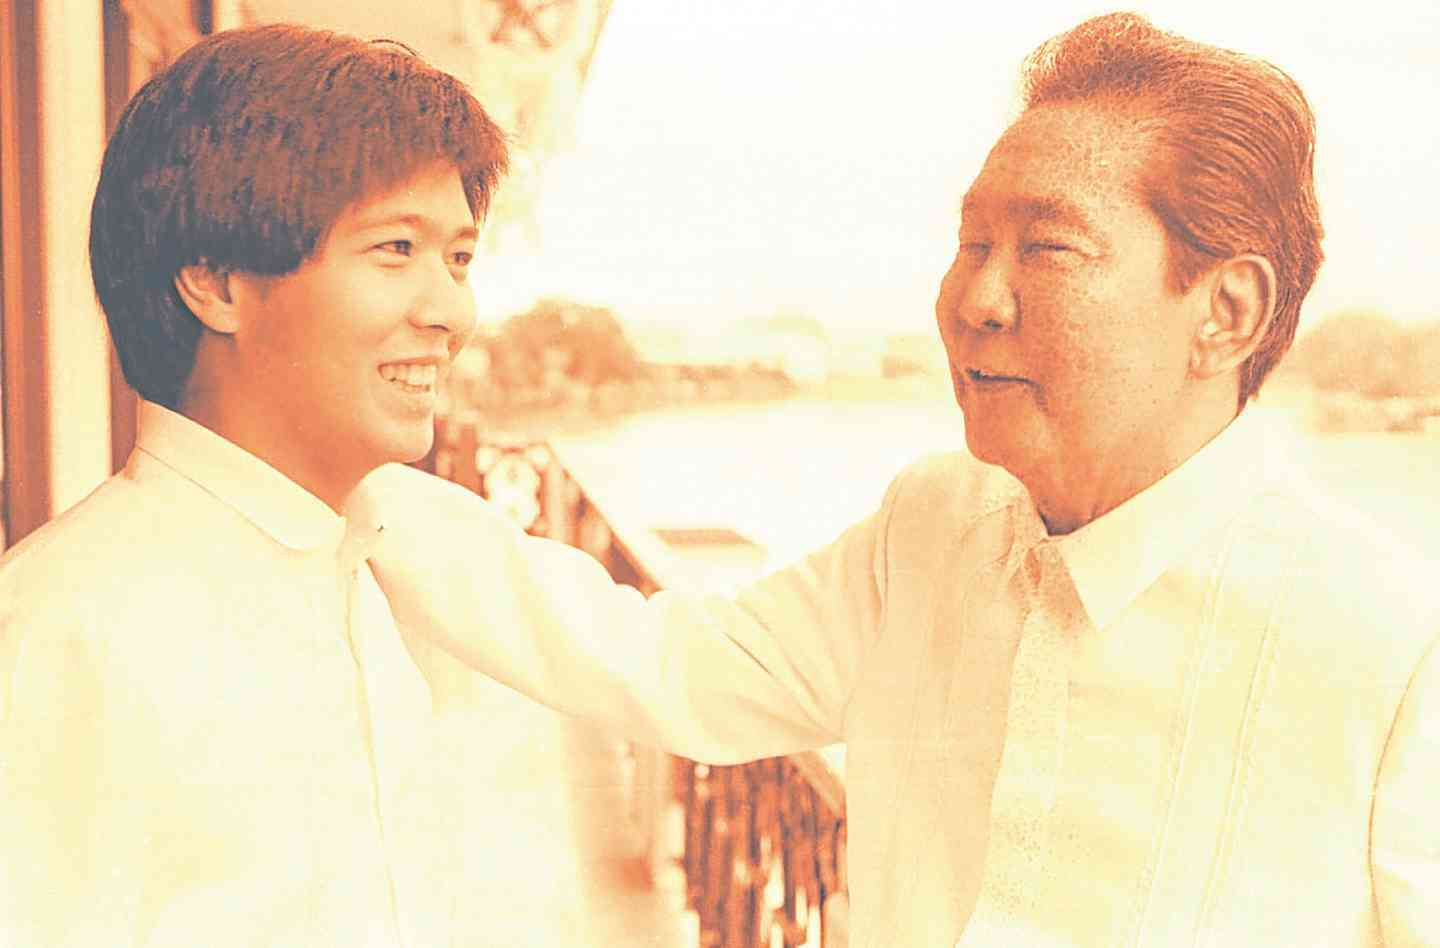 Closure on martial law not in my hands' —Bongbong